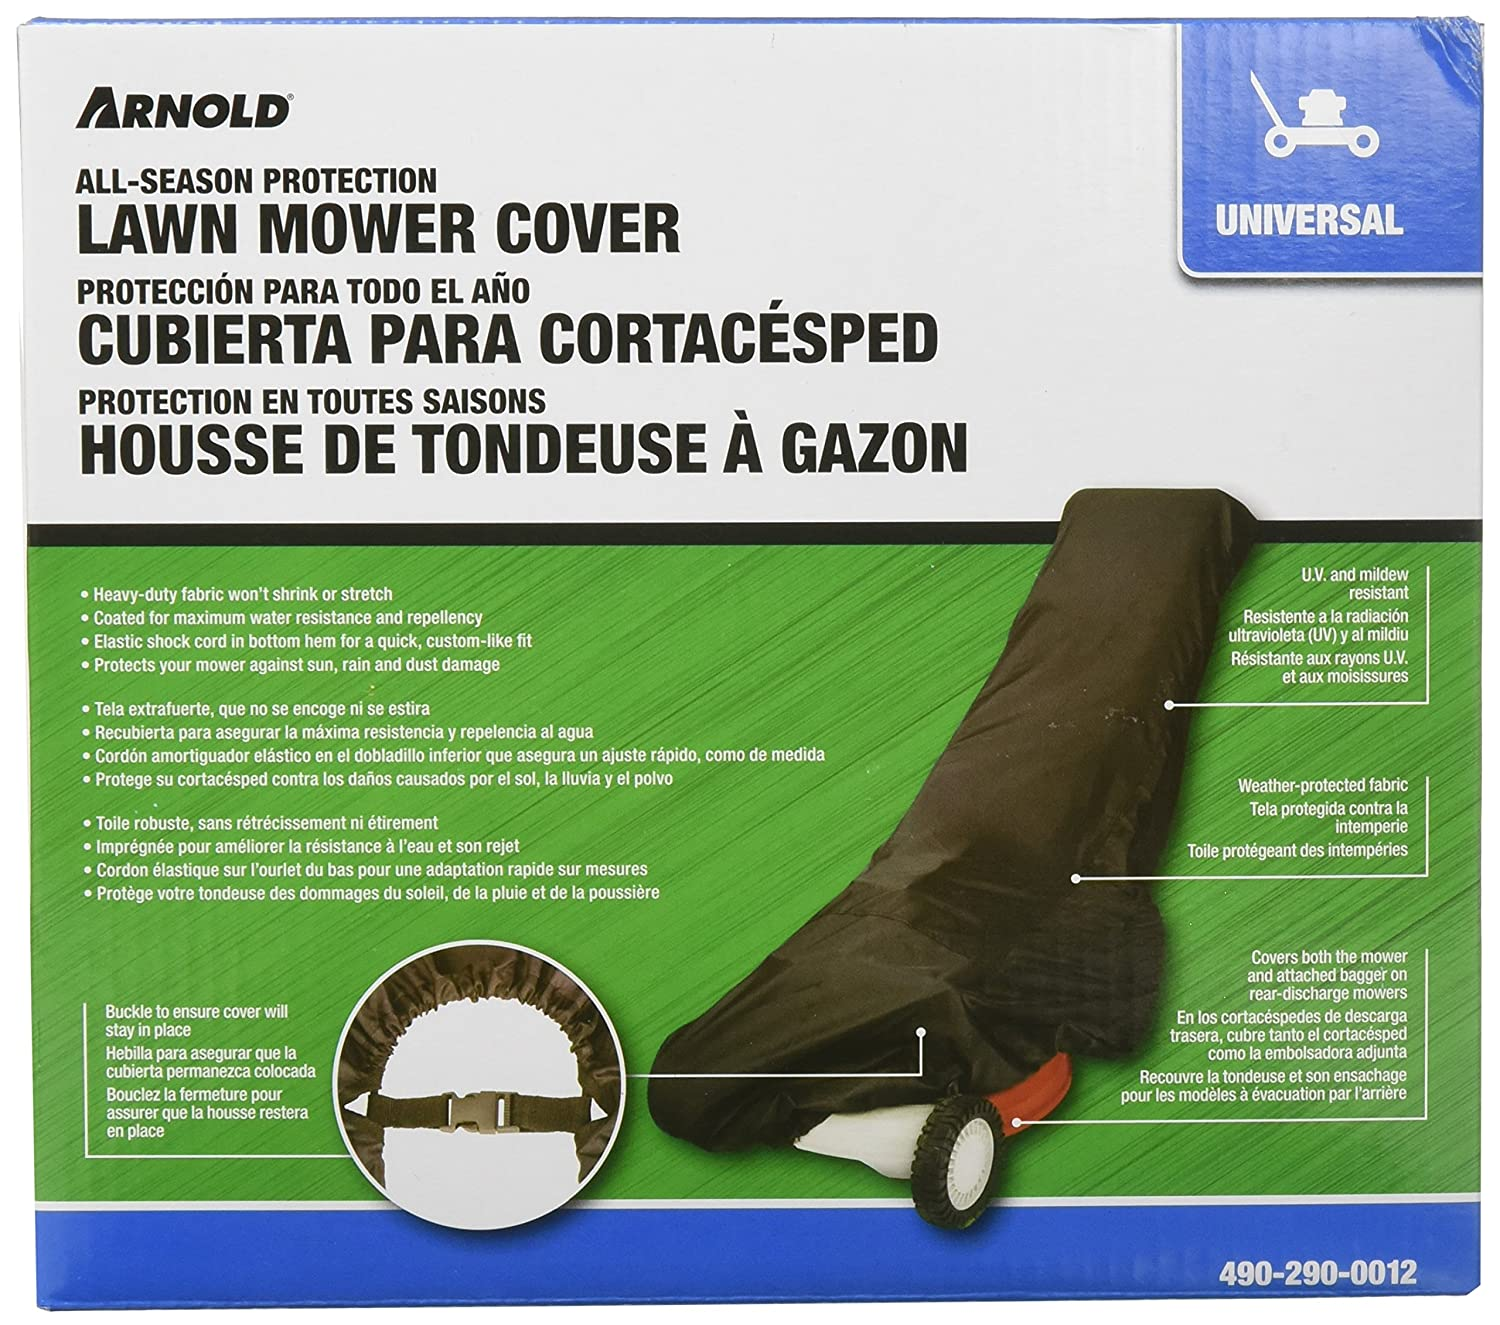 Arnold 70 1/2-Inch x 26 3/4-Inch x 18 1/8-Inch Universal Lawn Mower Cover Arnold Corporation 490-290-0012